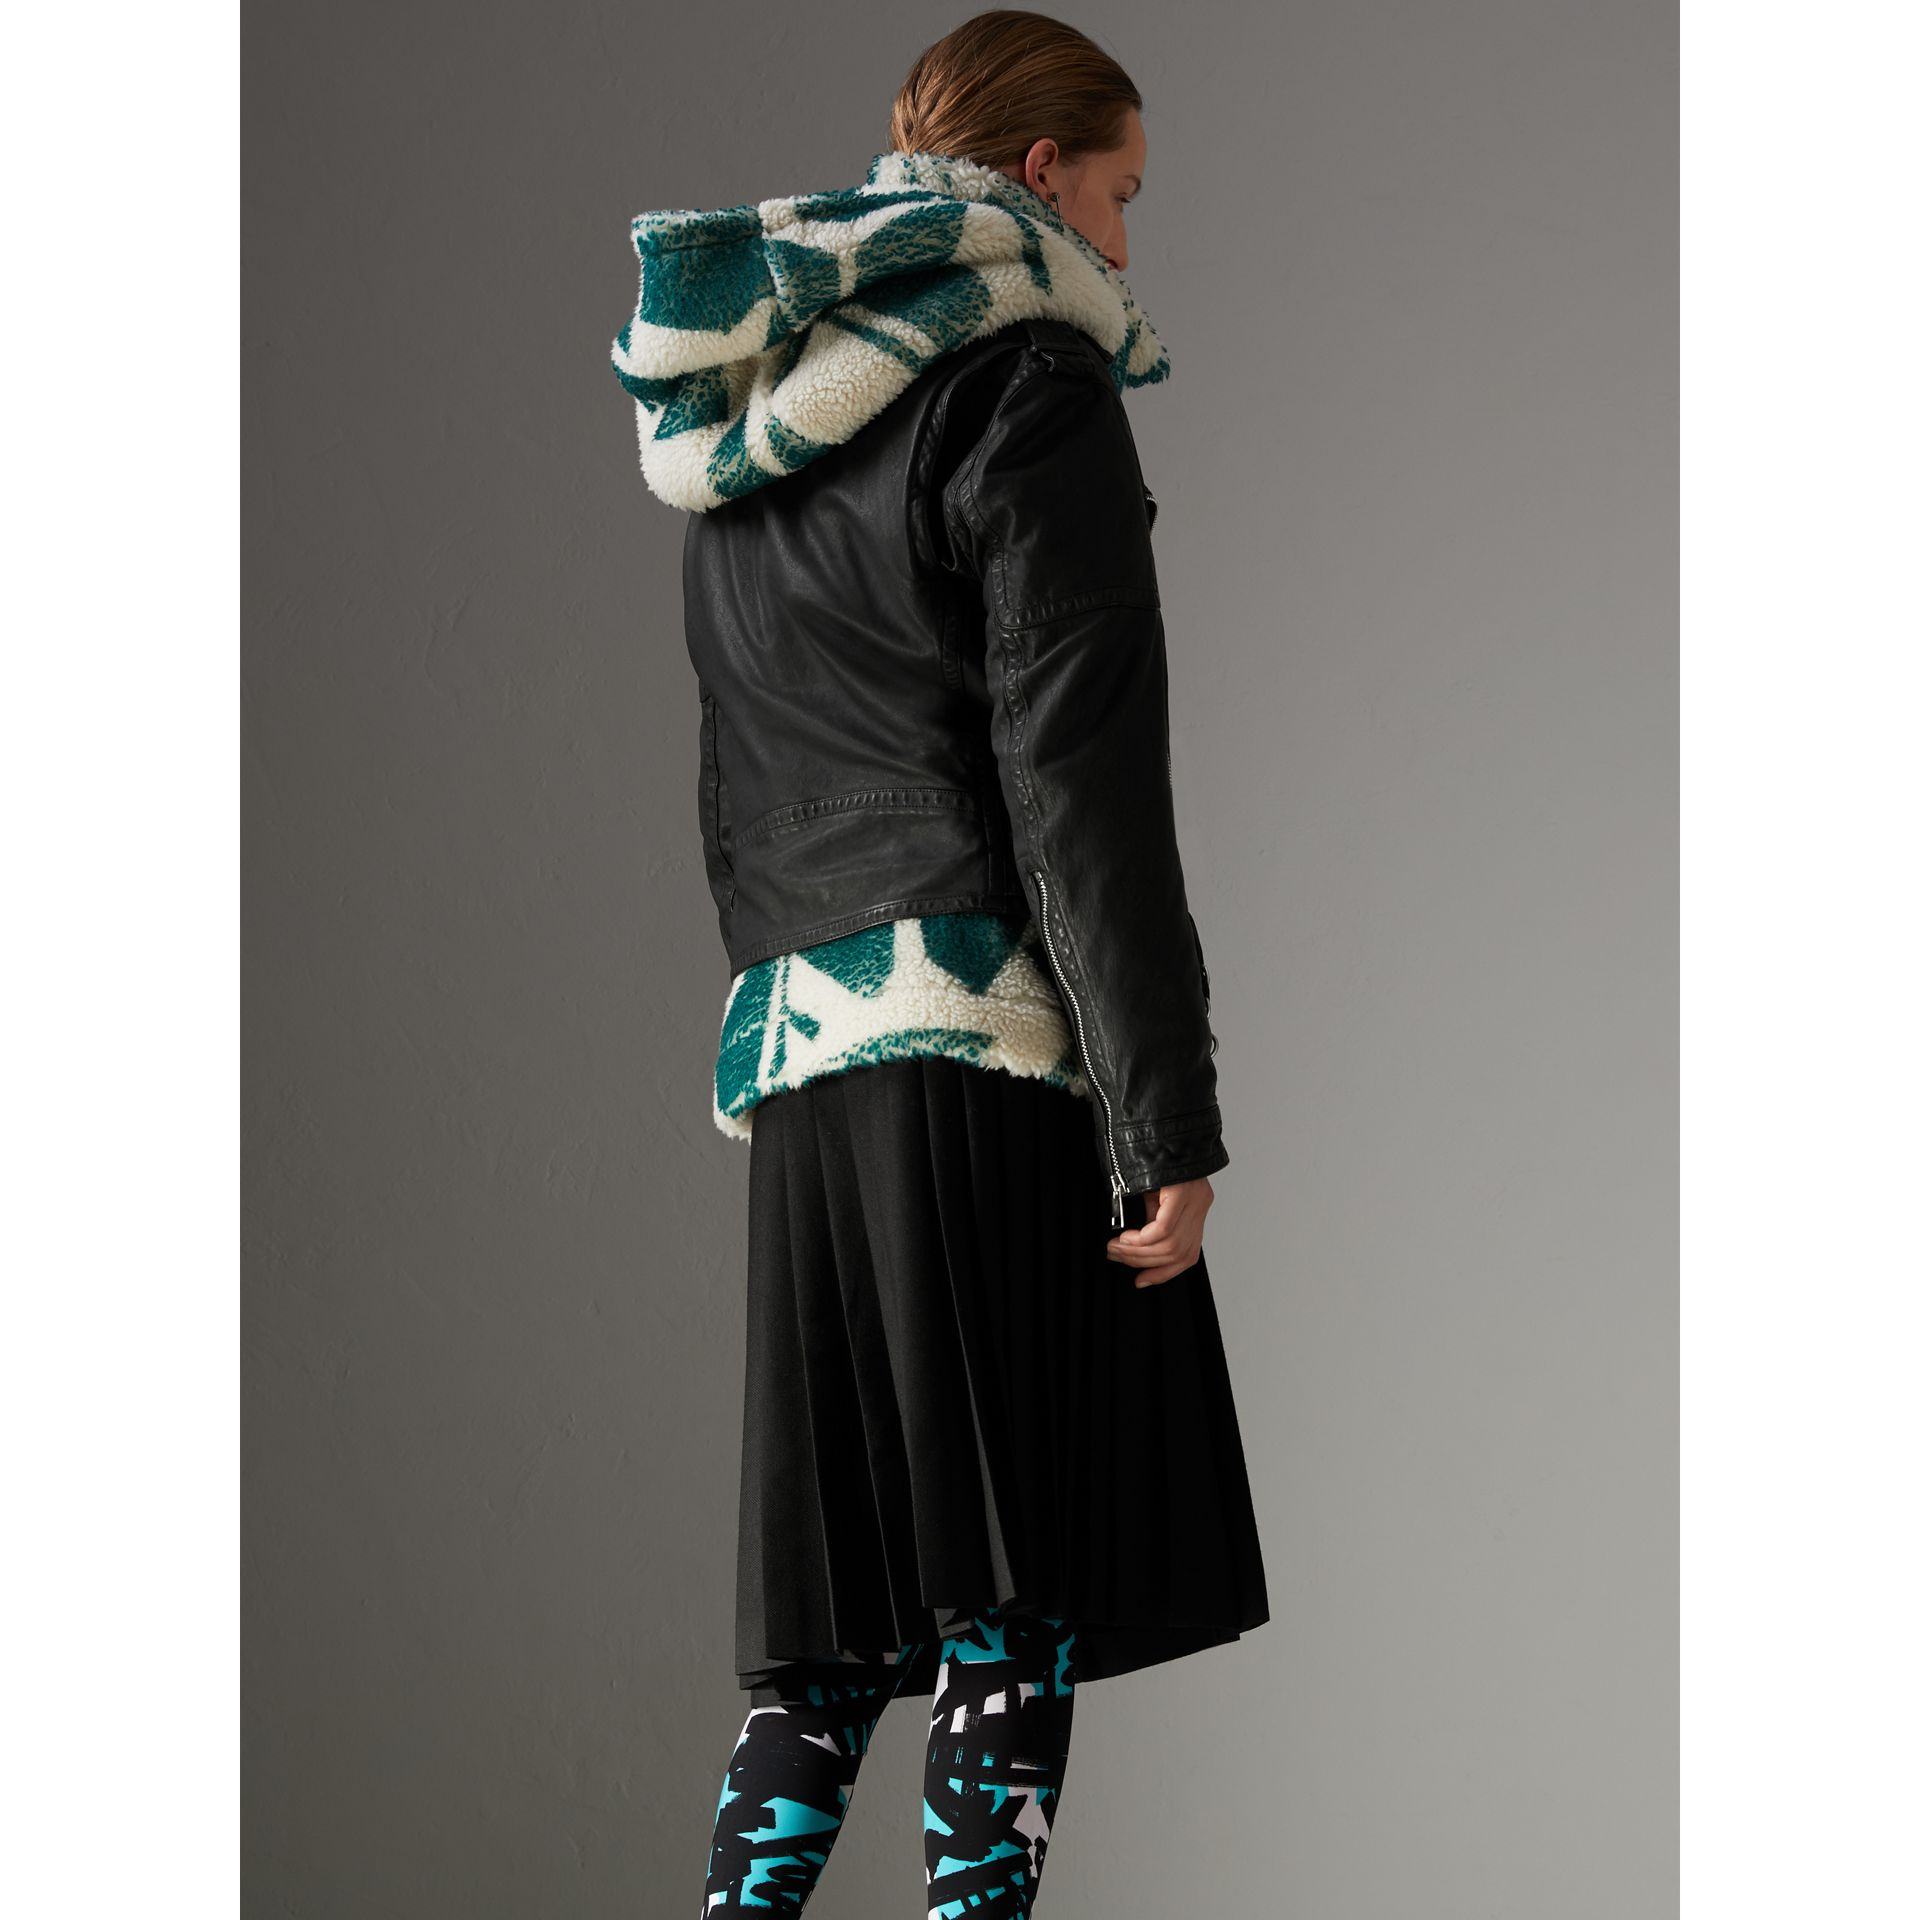 Graffiti Print Leggings in Turquoise - Women | Burberry Canada - gallery image 2